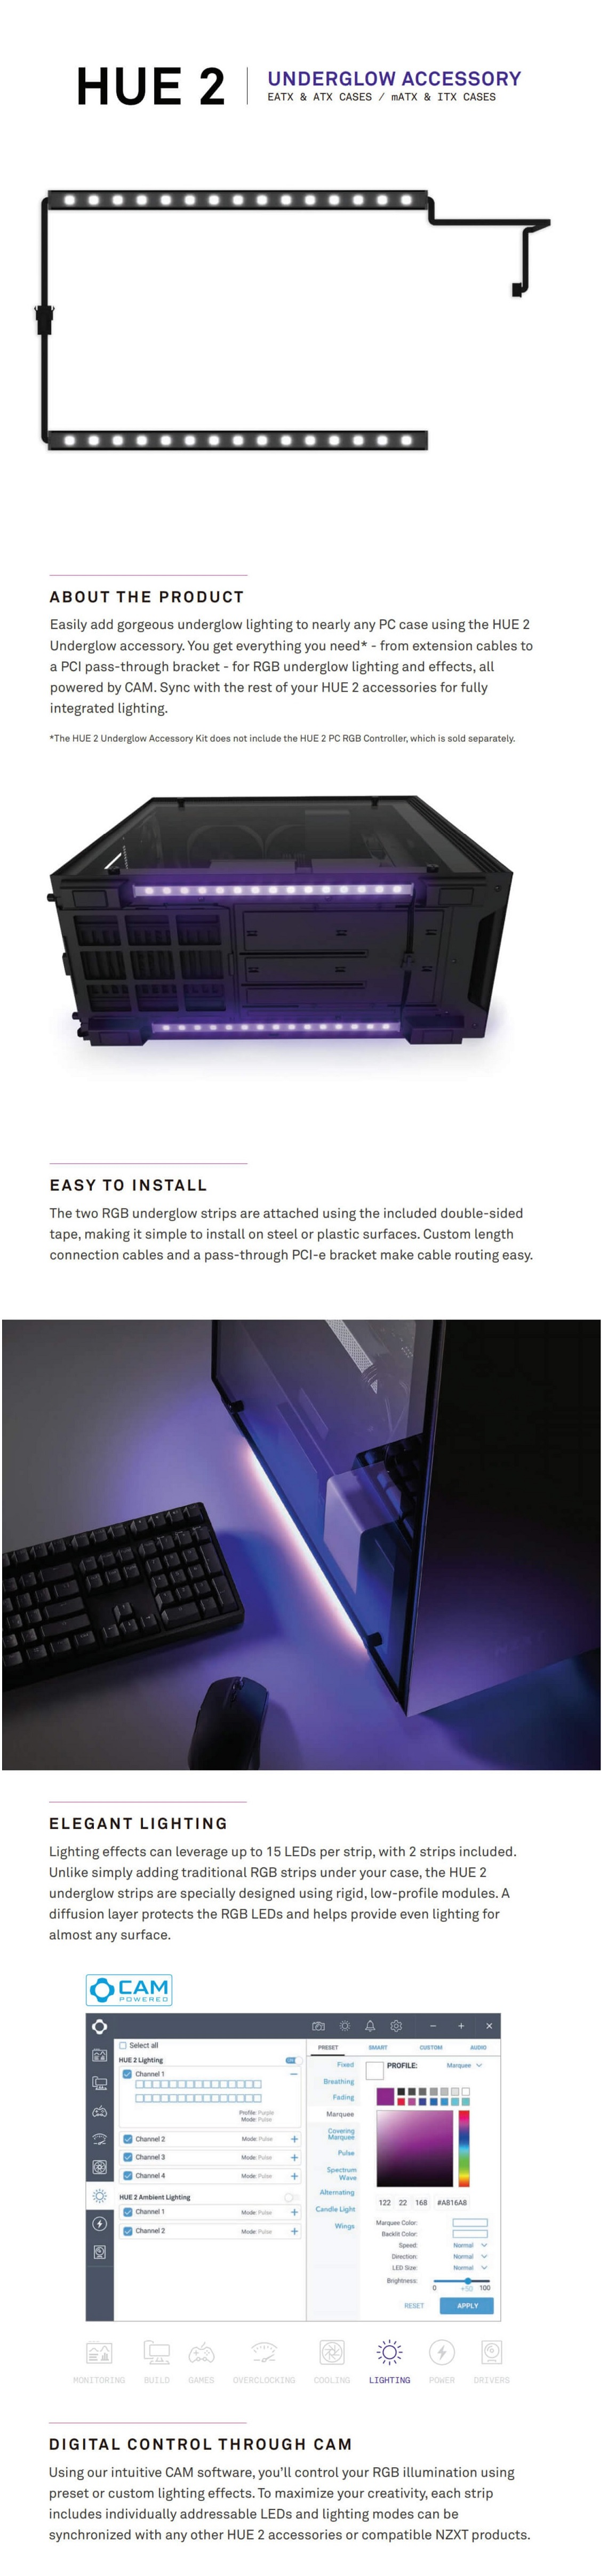 NZXT HUE Underglow 300mm Dual RGB LED Strips Immersive Desktop Lighting System